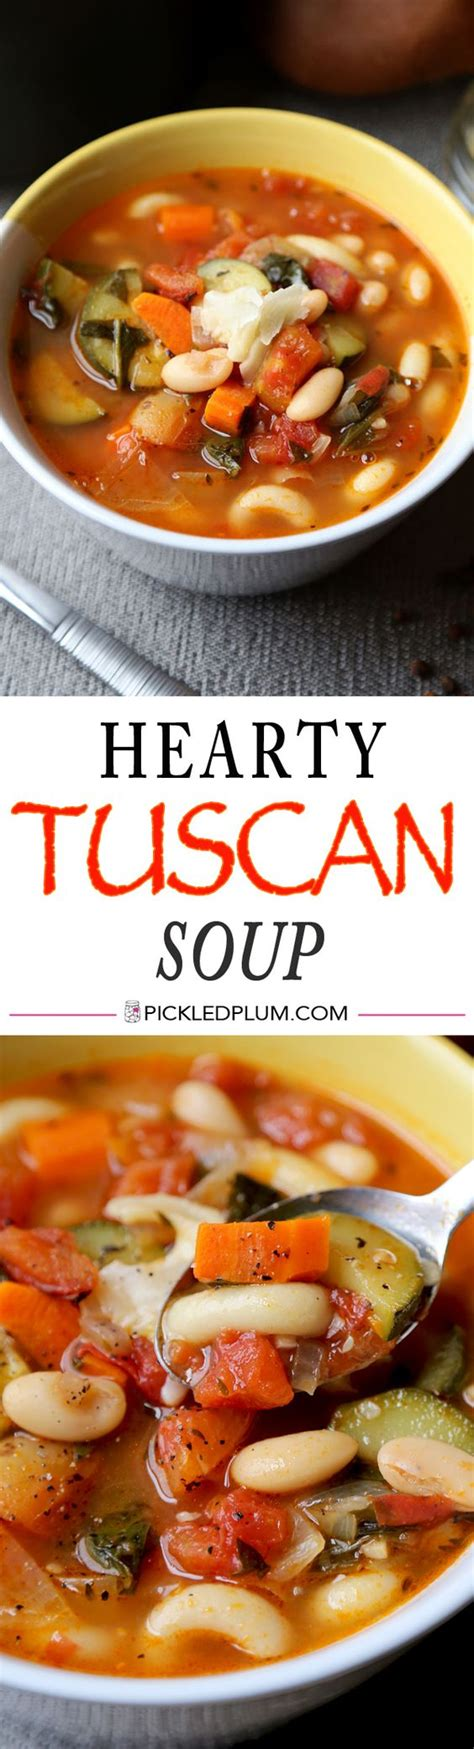 comfort food soup recipes hearty tuscan soup recipe tuscan soup vegans and soup